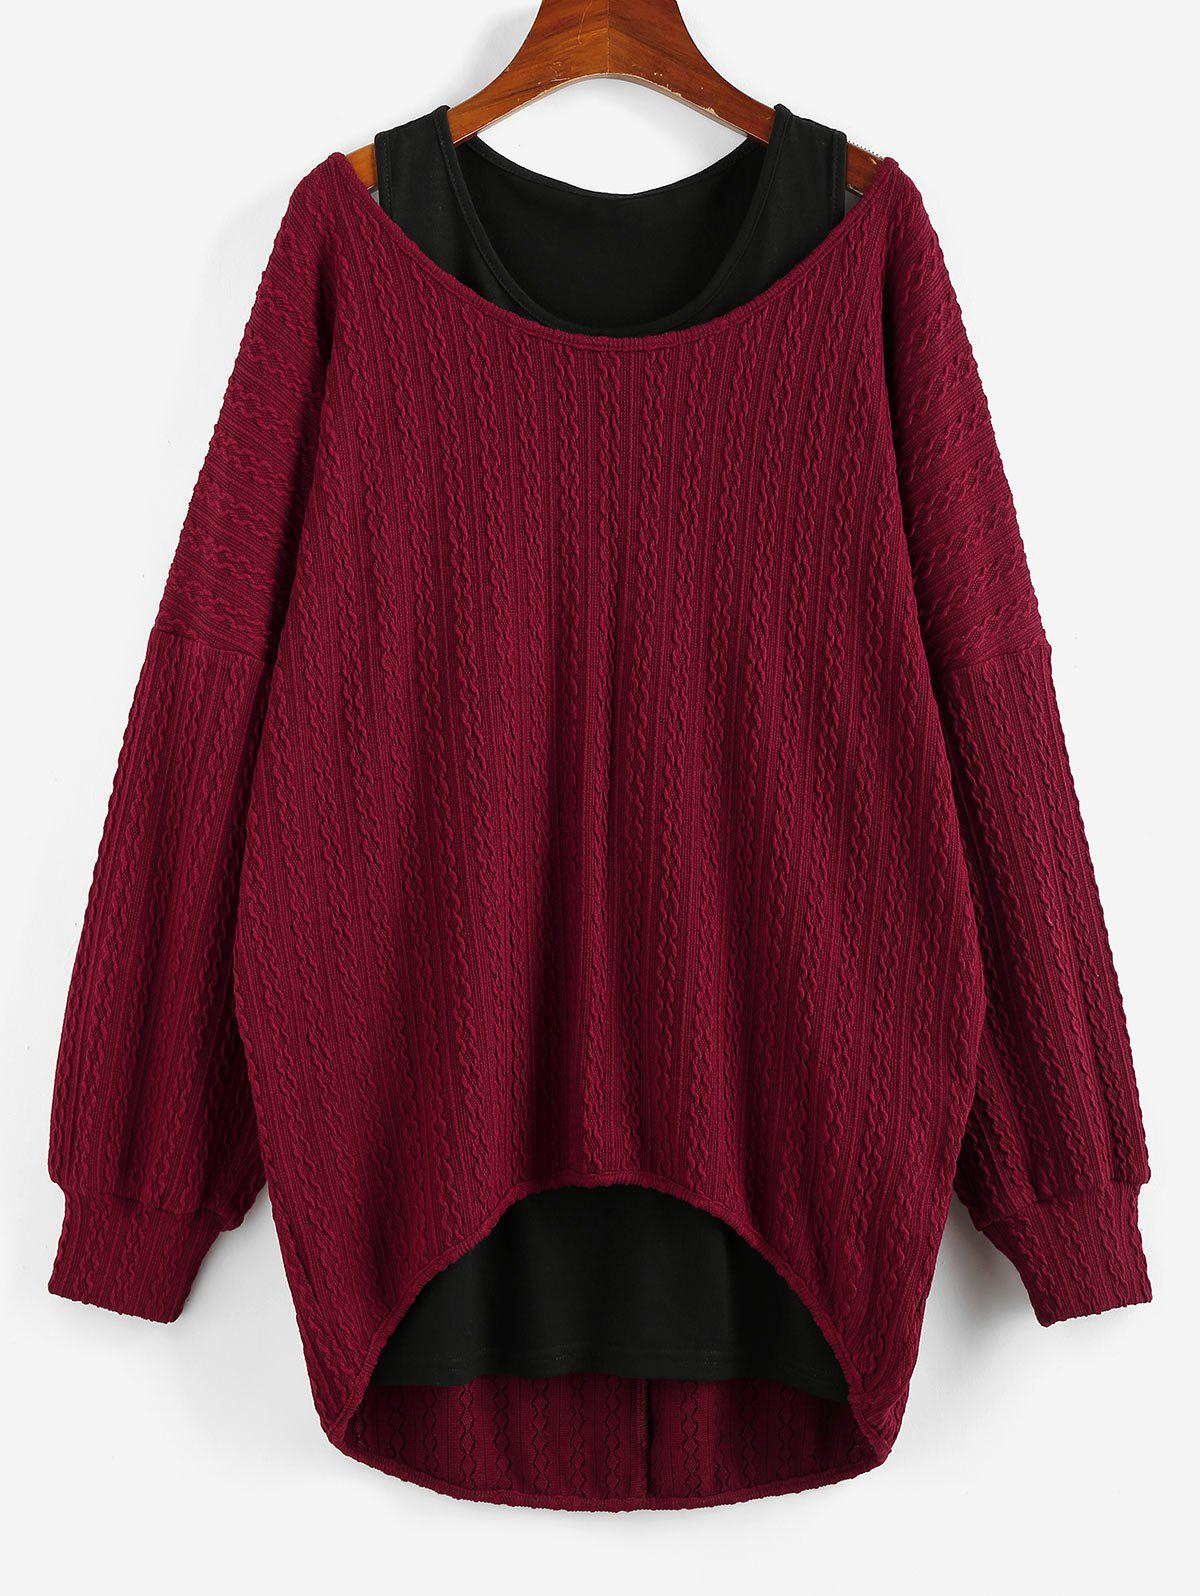 Chic Drop Shoulder Jacquard High Low Sweater and Plain Tank Top